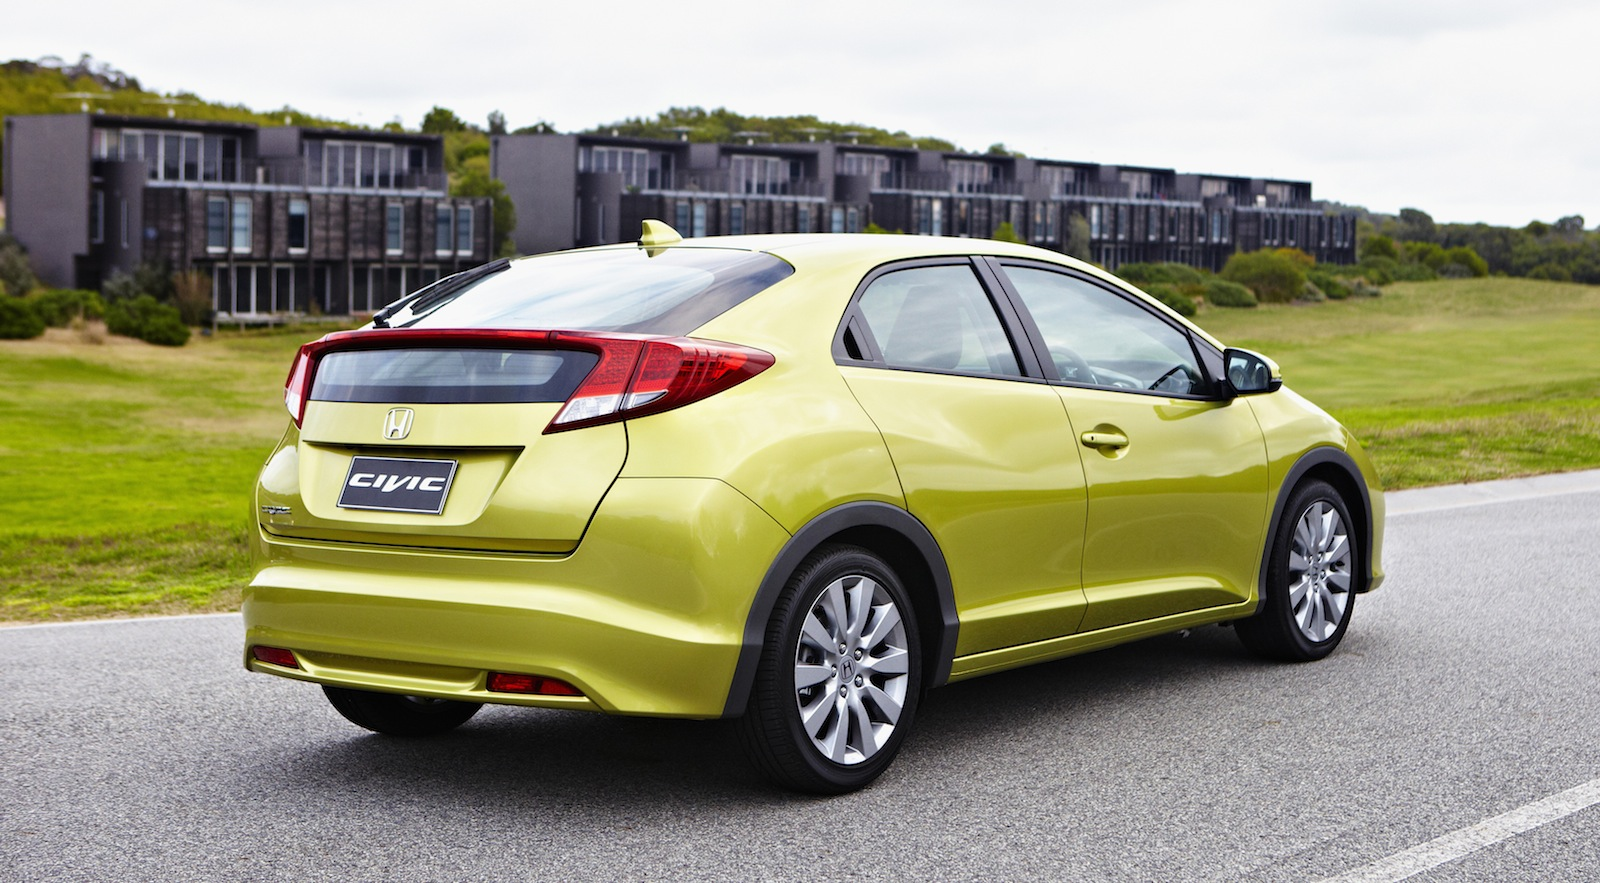 Honda Civic Hatch Review - Photos